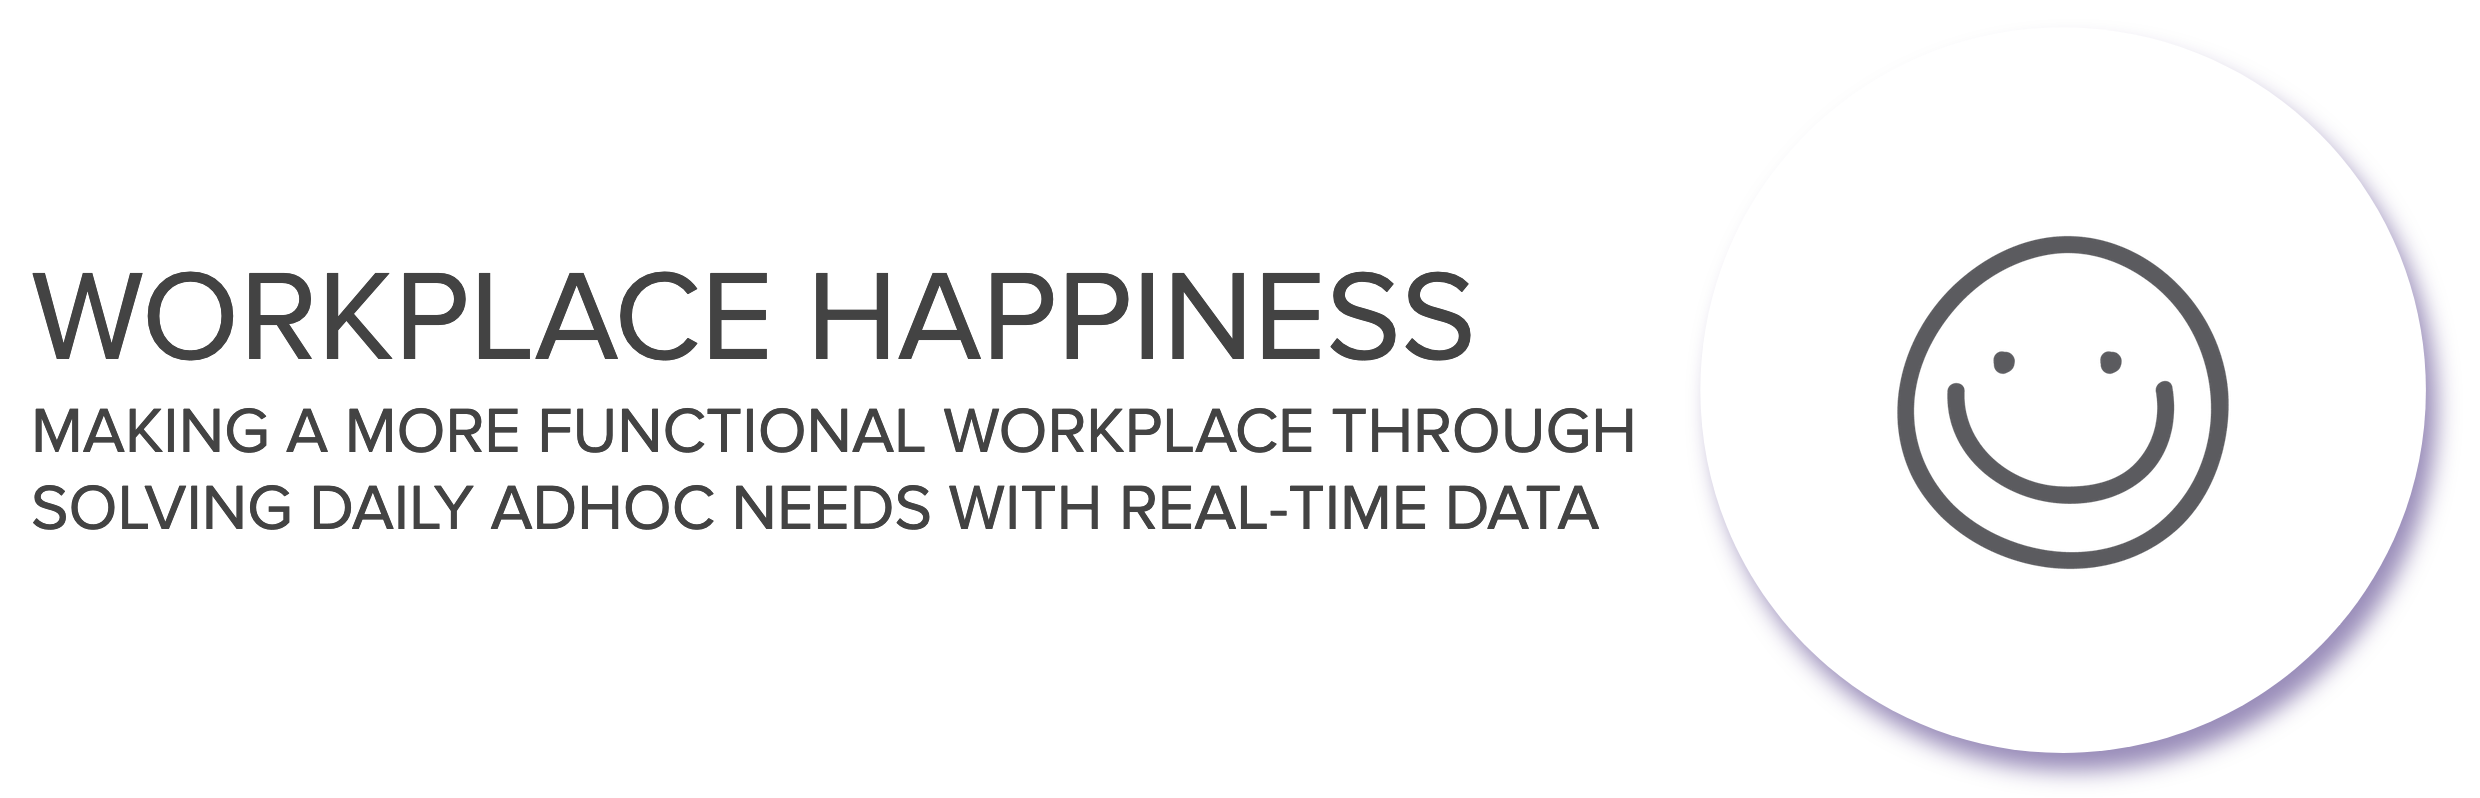 workplace happines.png